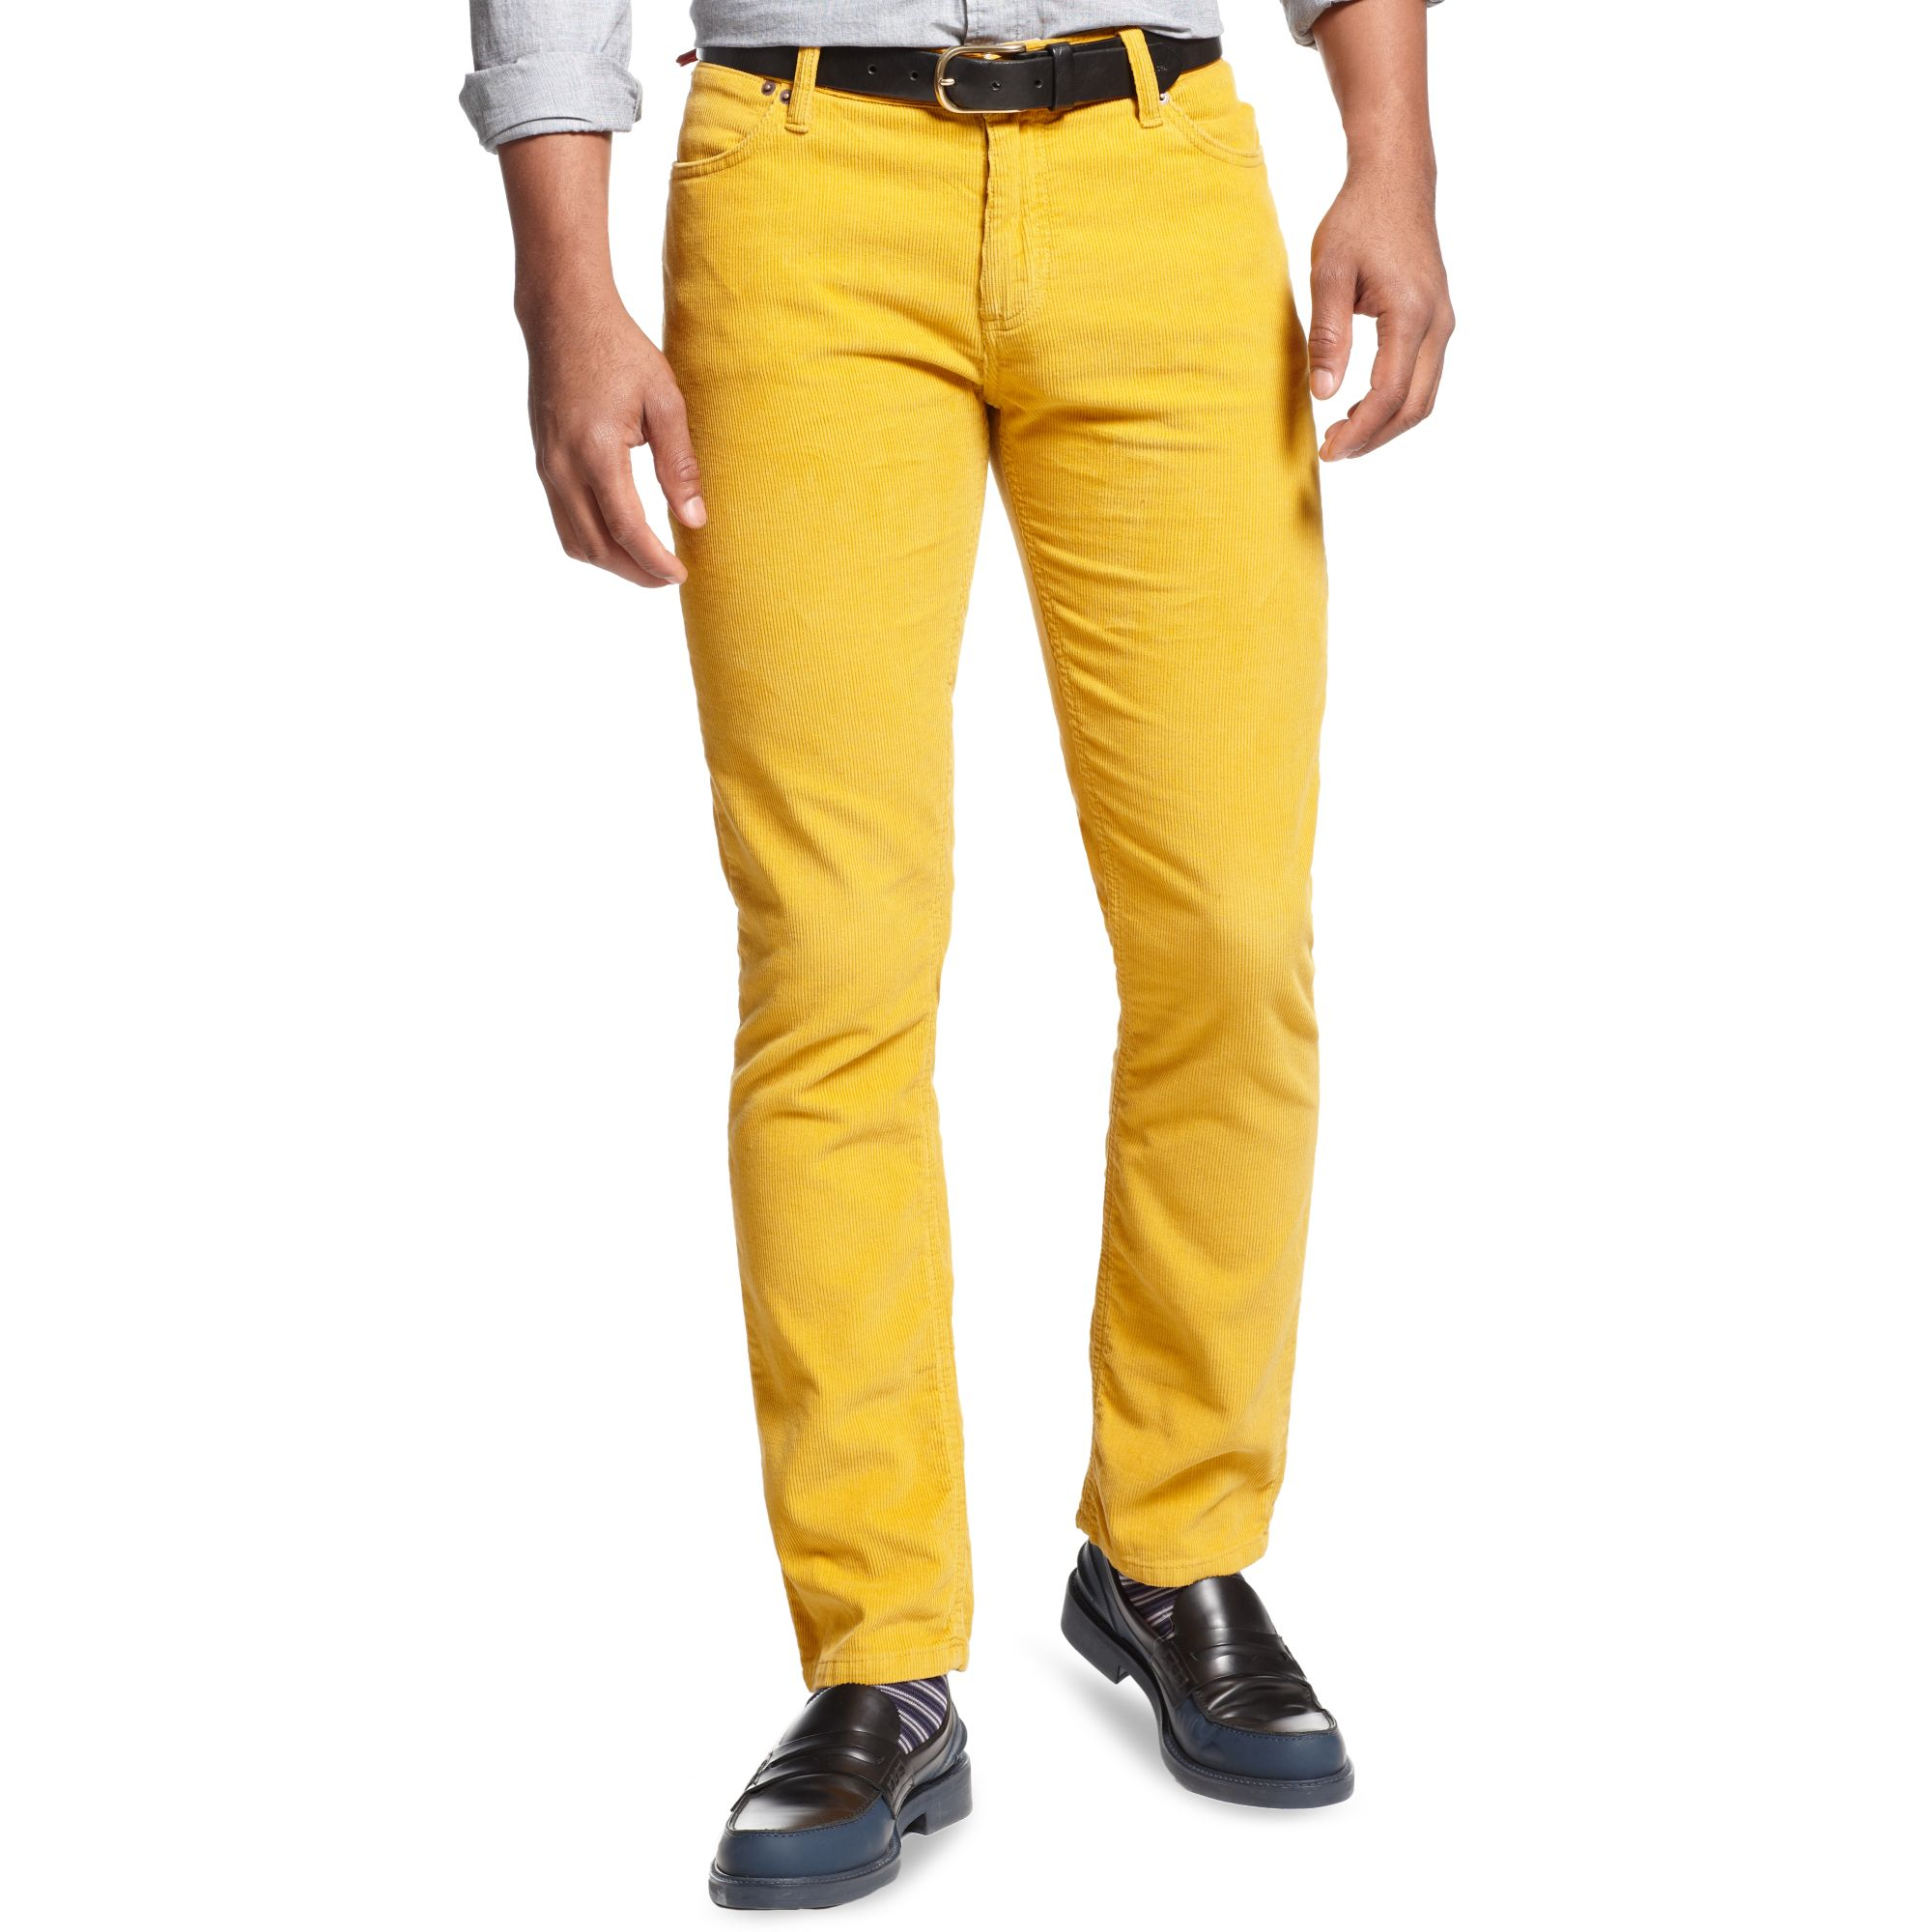 4be3451d1efb9 Lyst - Tommy Hilfiger Gage Rebel Slim Corduroy Pant in Yellow for Men